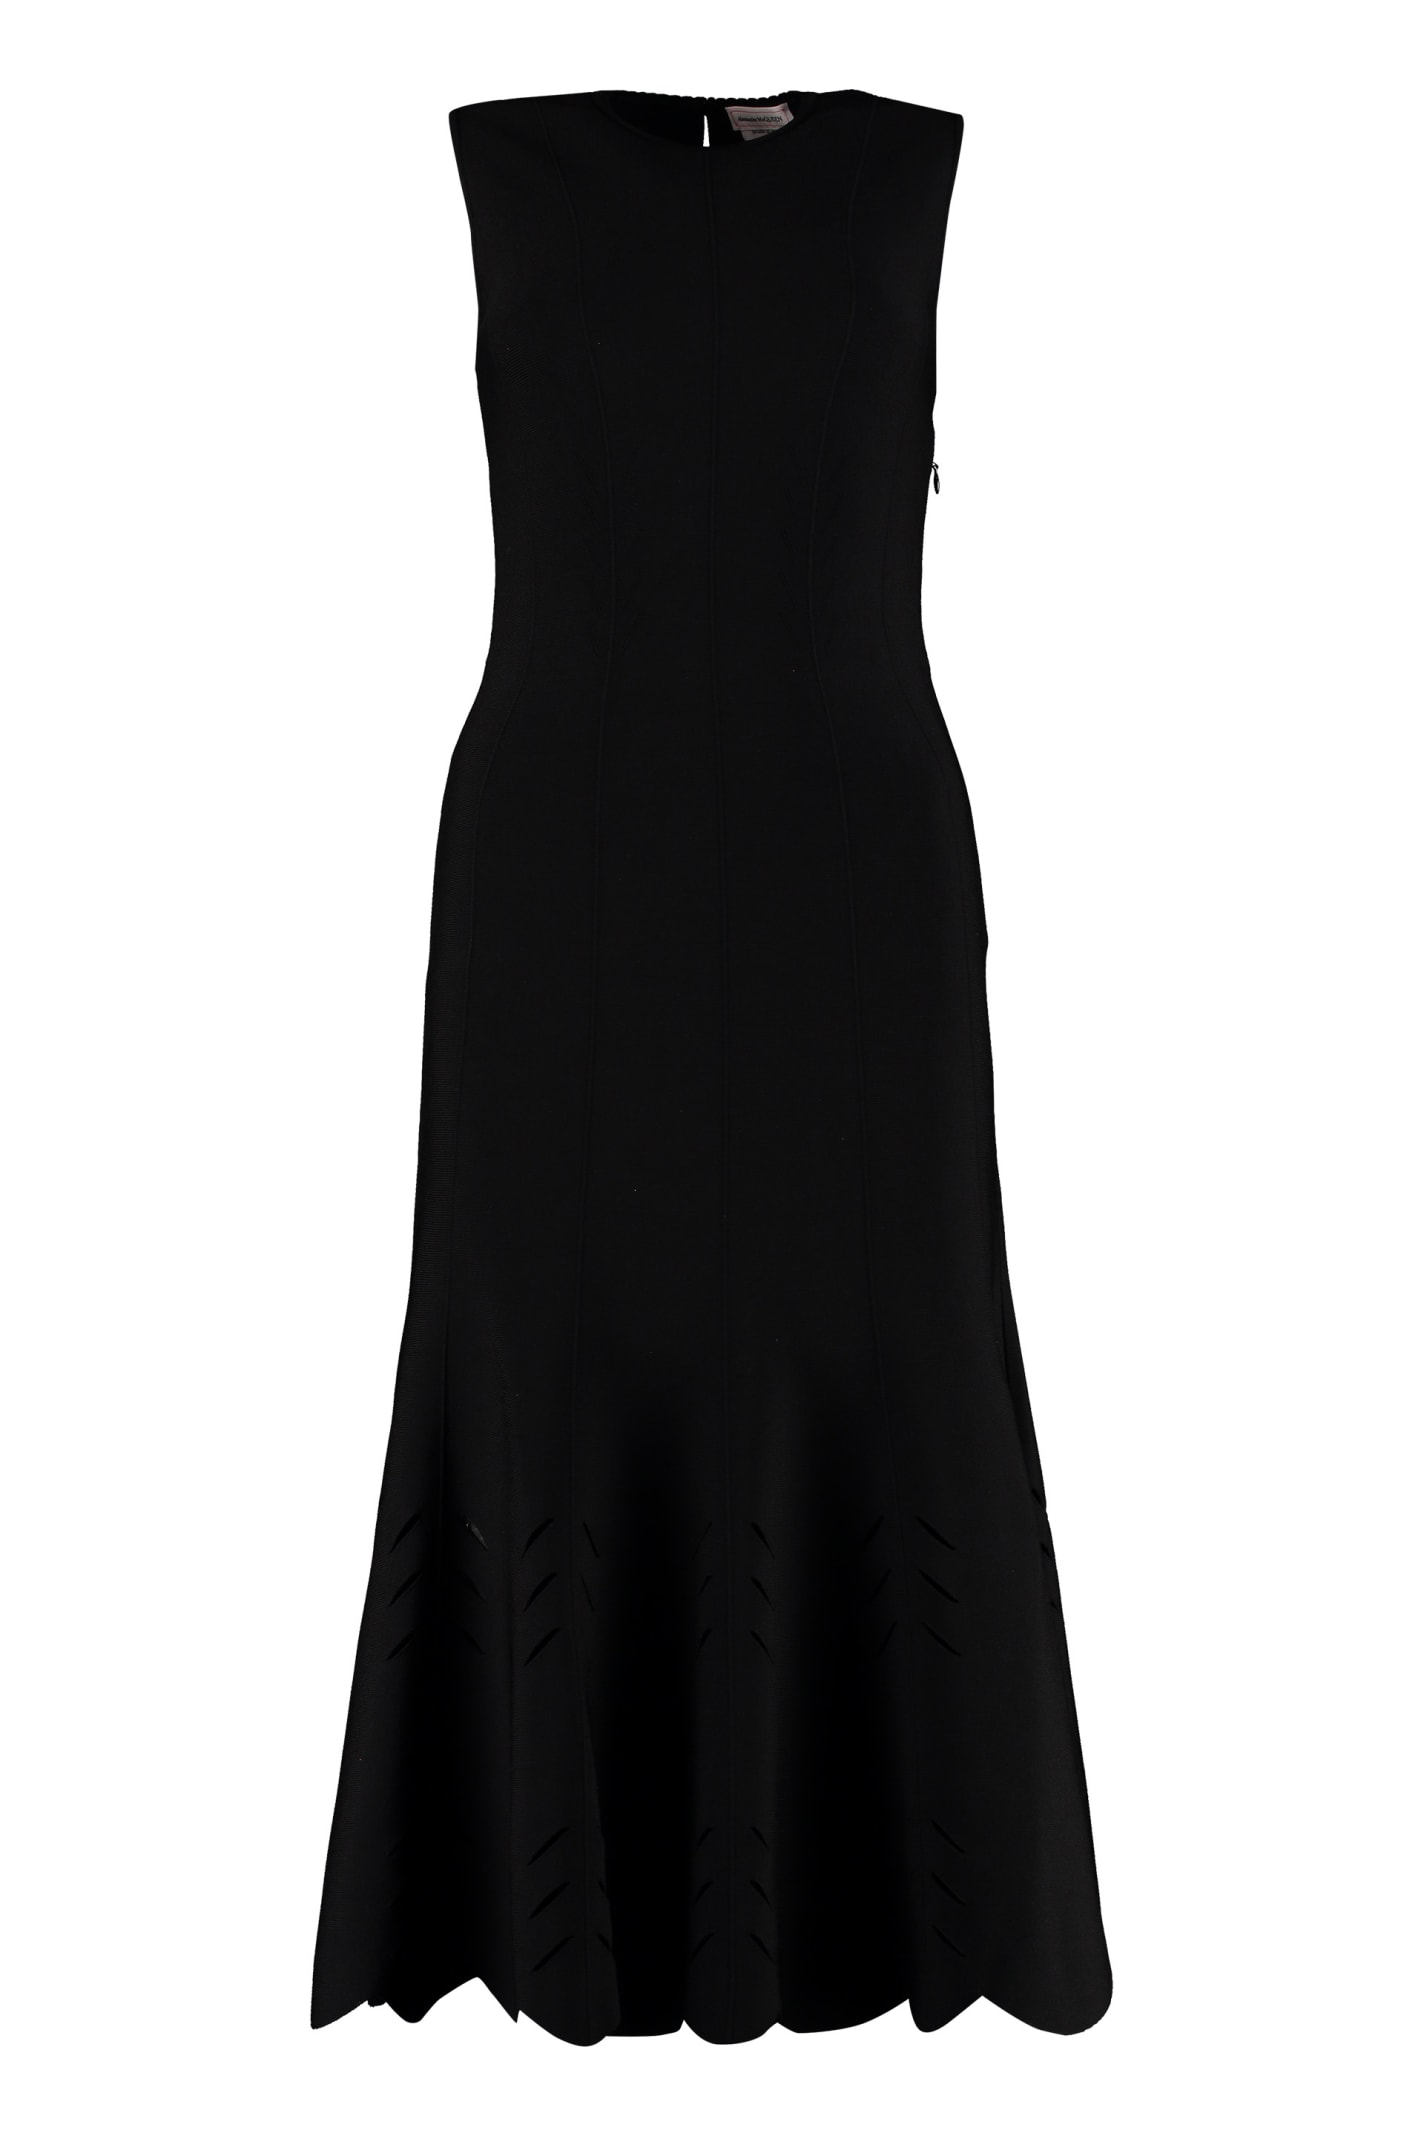 Alexander McQueen Cut-out Detail Knit Dress